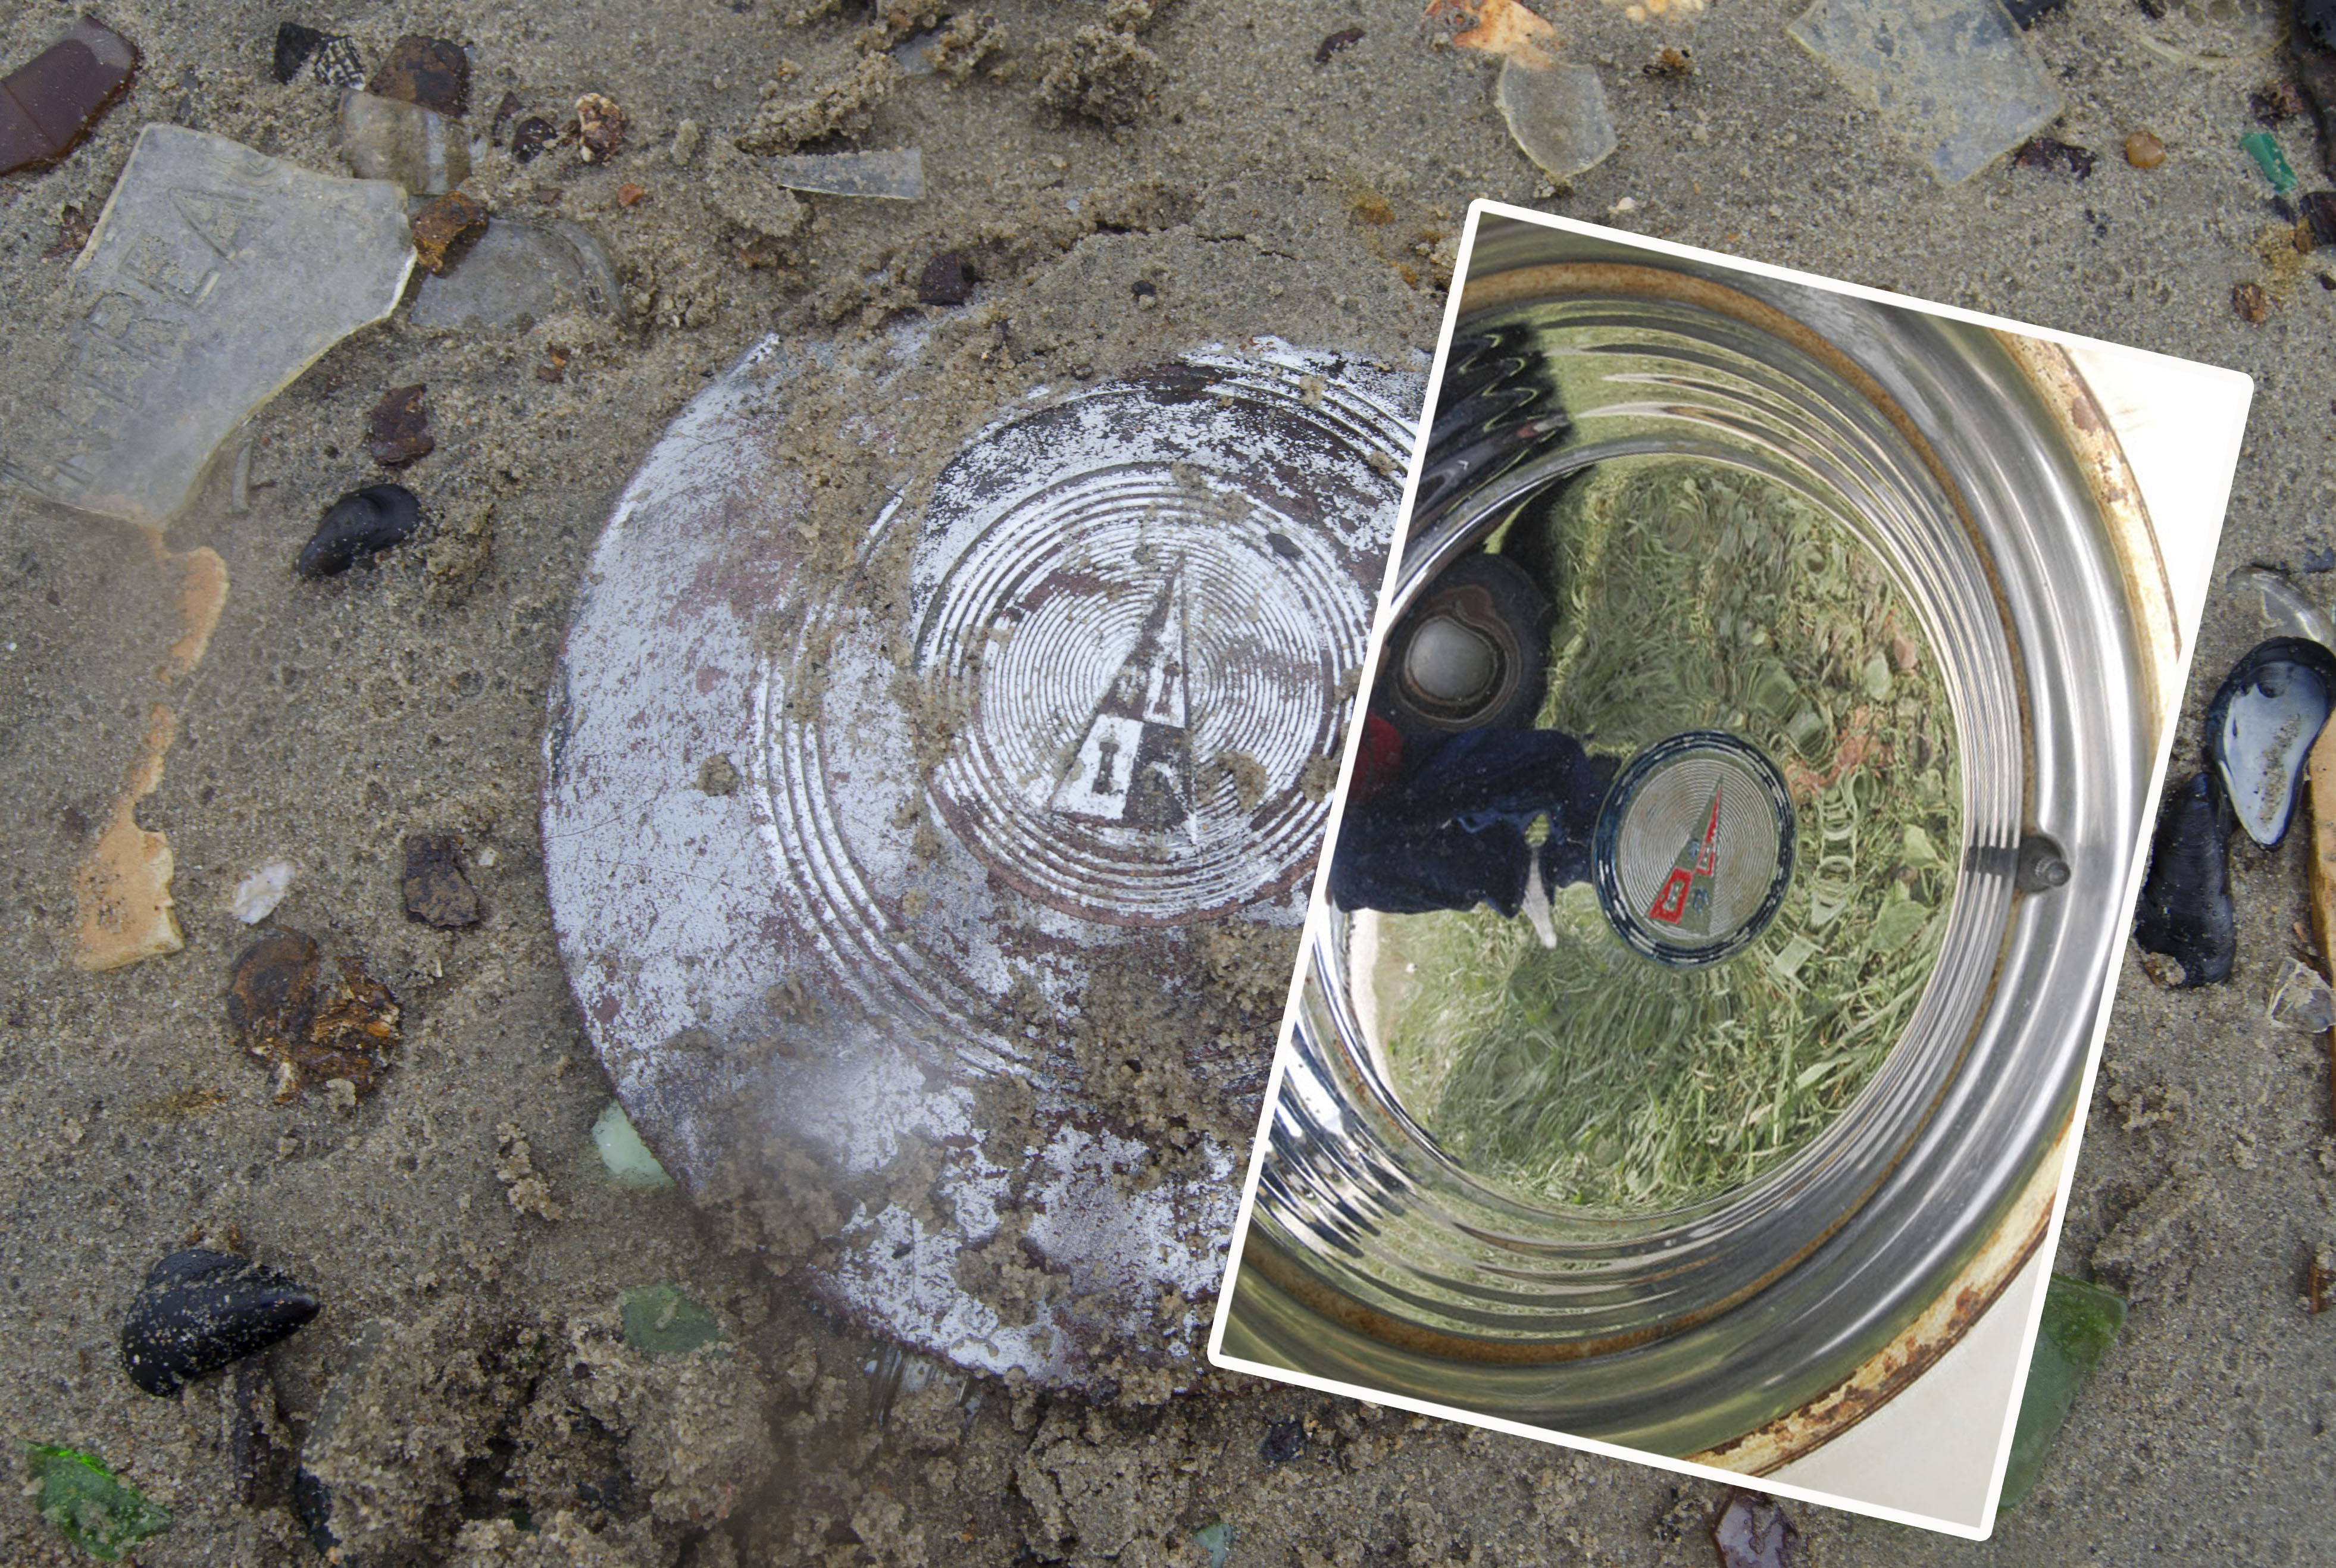 Ryan figured out this was a hubcap from a 1949 Hudson - check out the inset